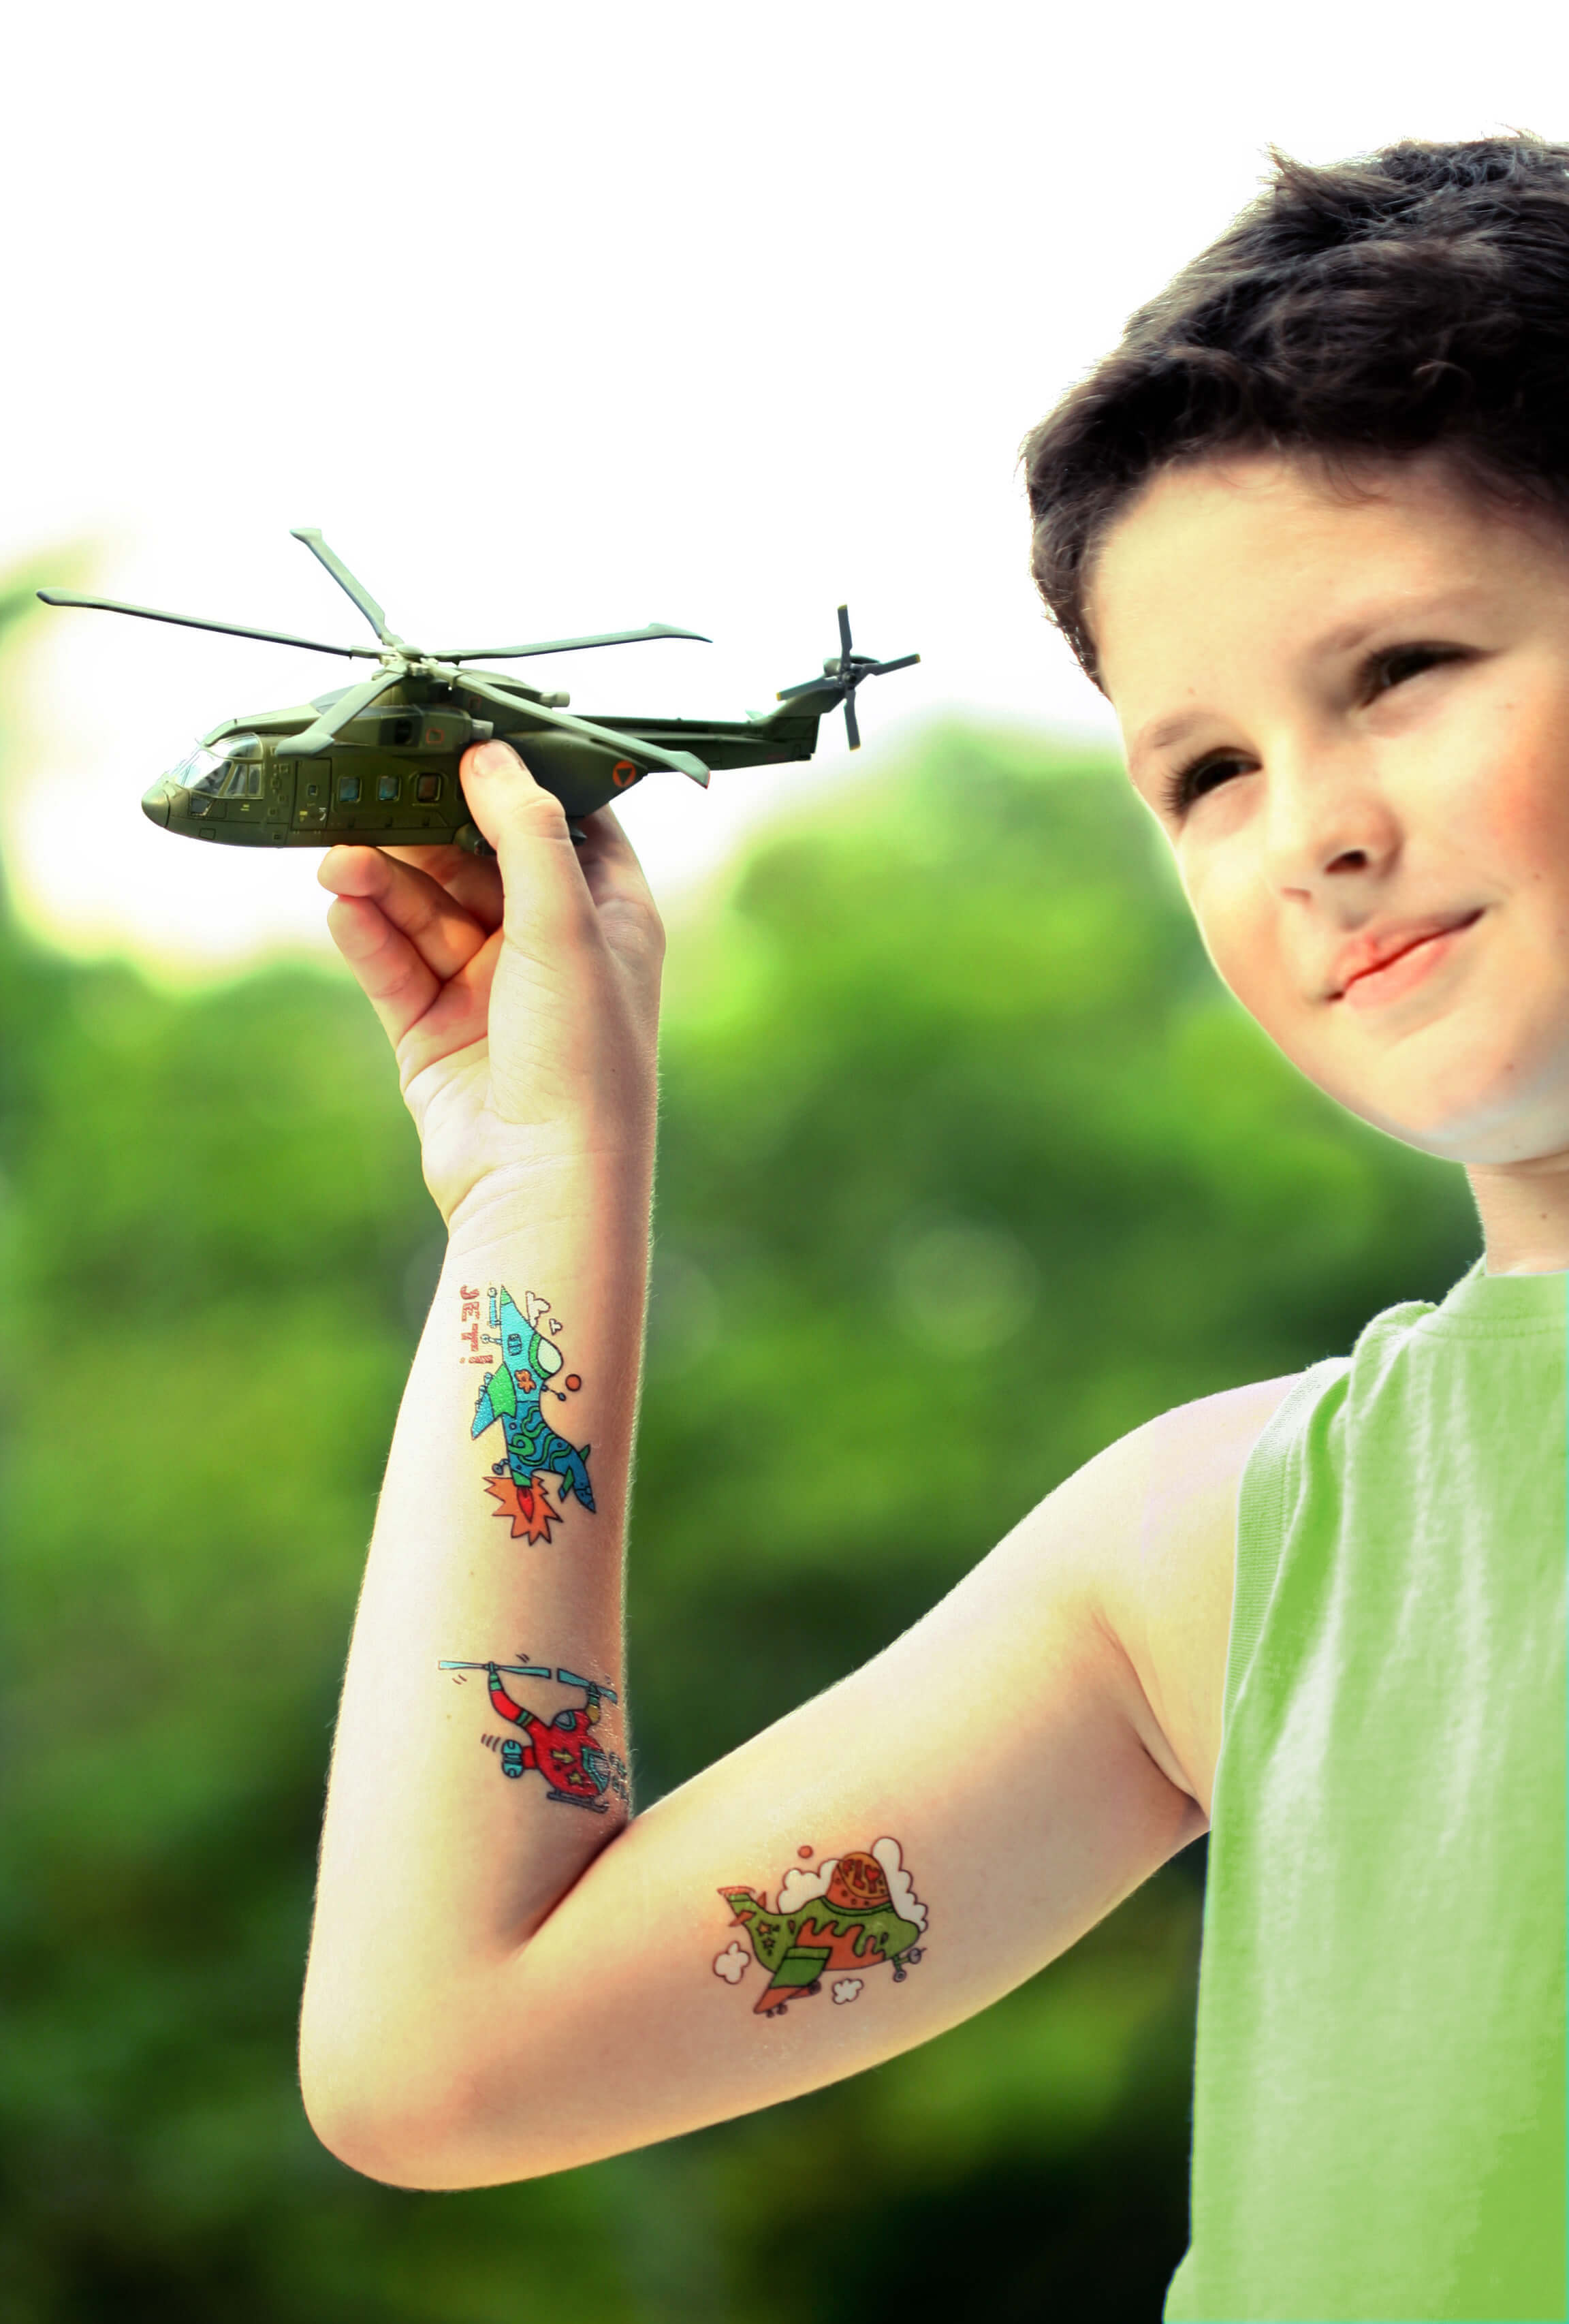 a kid holding chopper in his hands and wearing jet and chopper tattoos on his hands